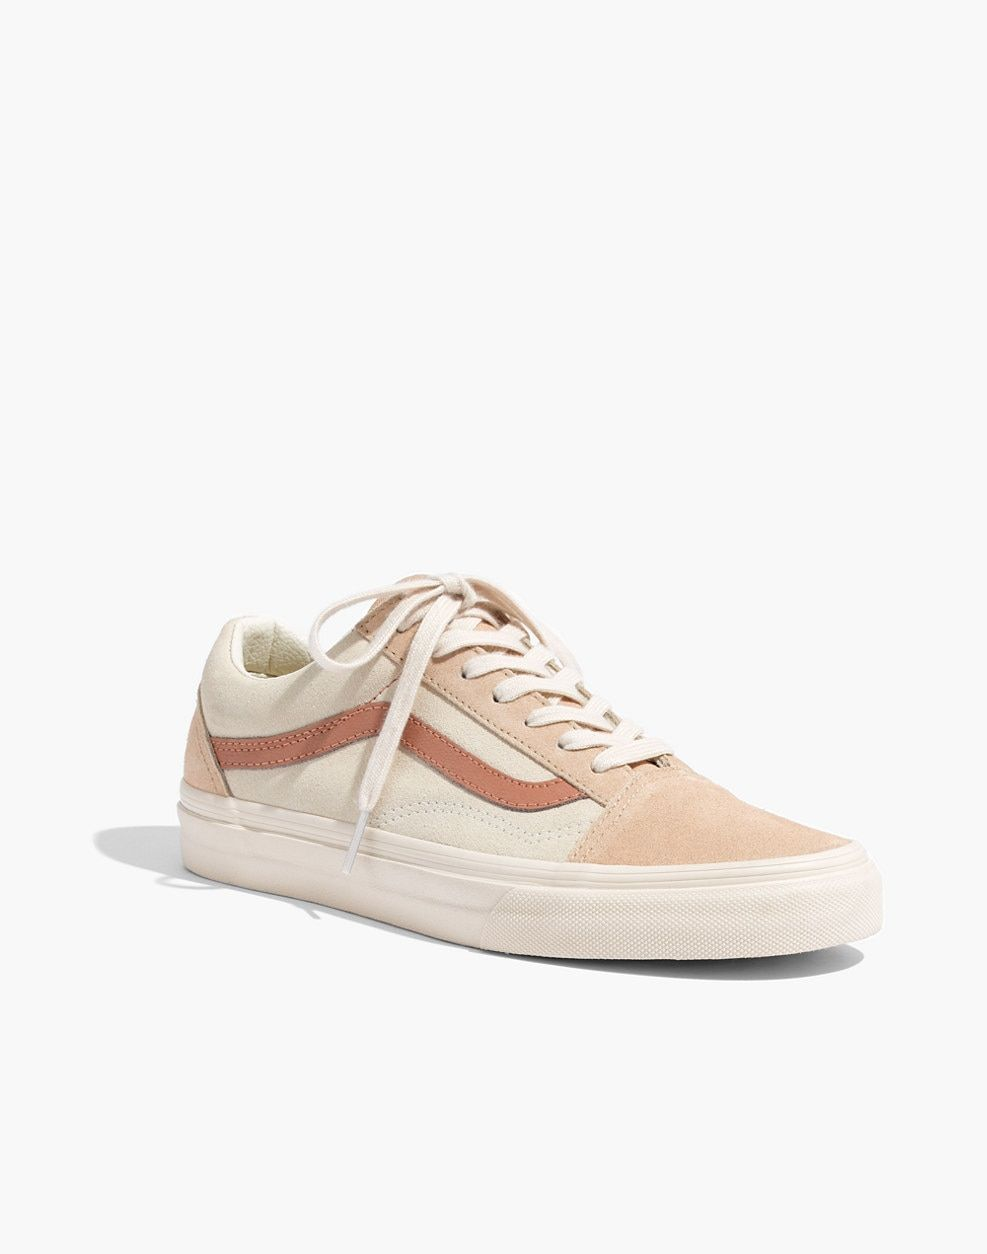 new arrival 8df06 80fe8 Pre-order Madewell x Vans® Unisex Old Skool Lace-Up Sneakers in Camel  Colorblock   sneakers   Madewell